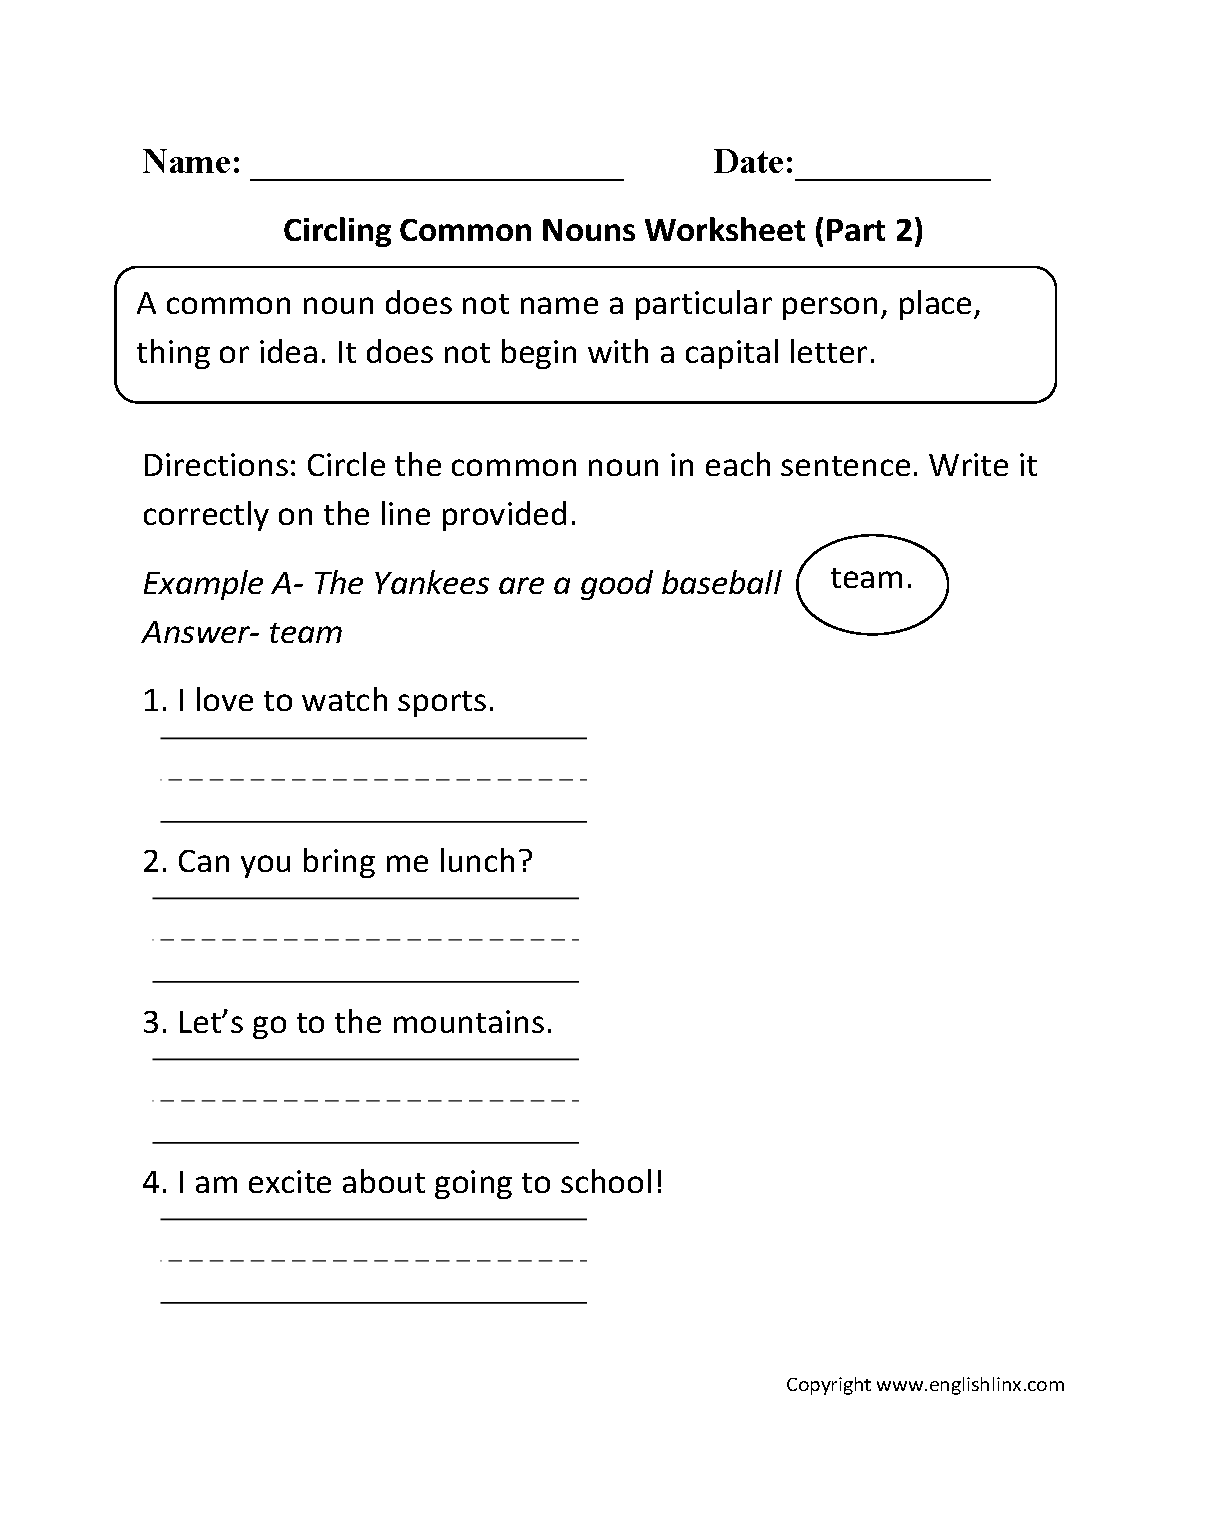 Worksheets Third Grade Editing Worksheets circling common nouns worksheet part 2 worksheets pinterest 2